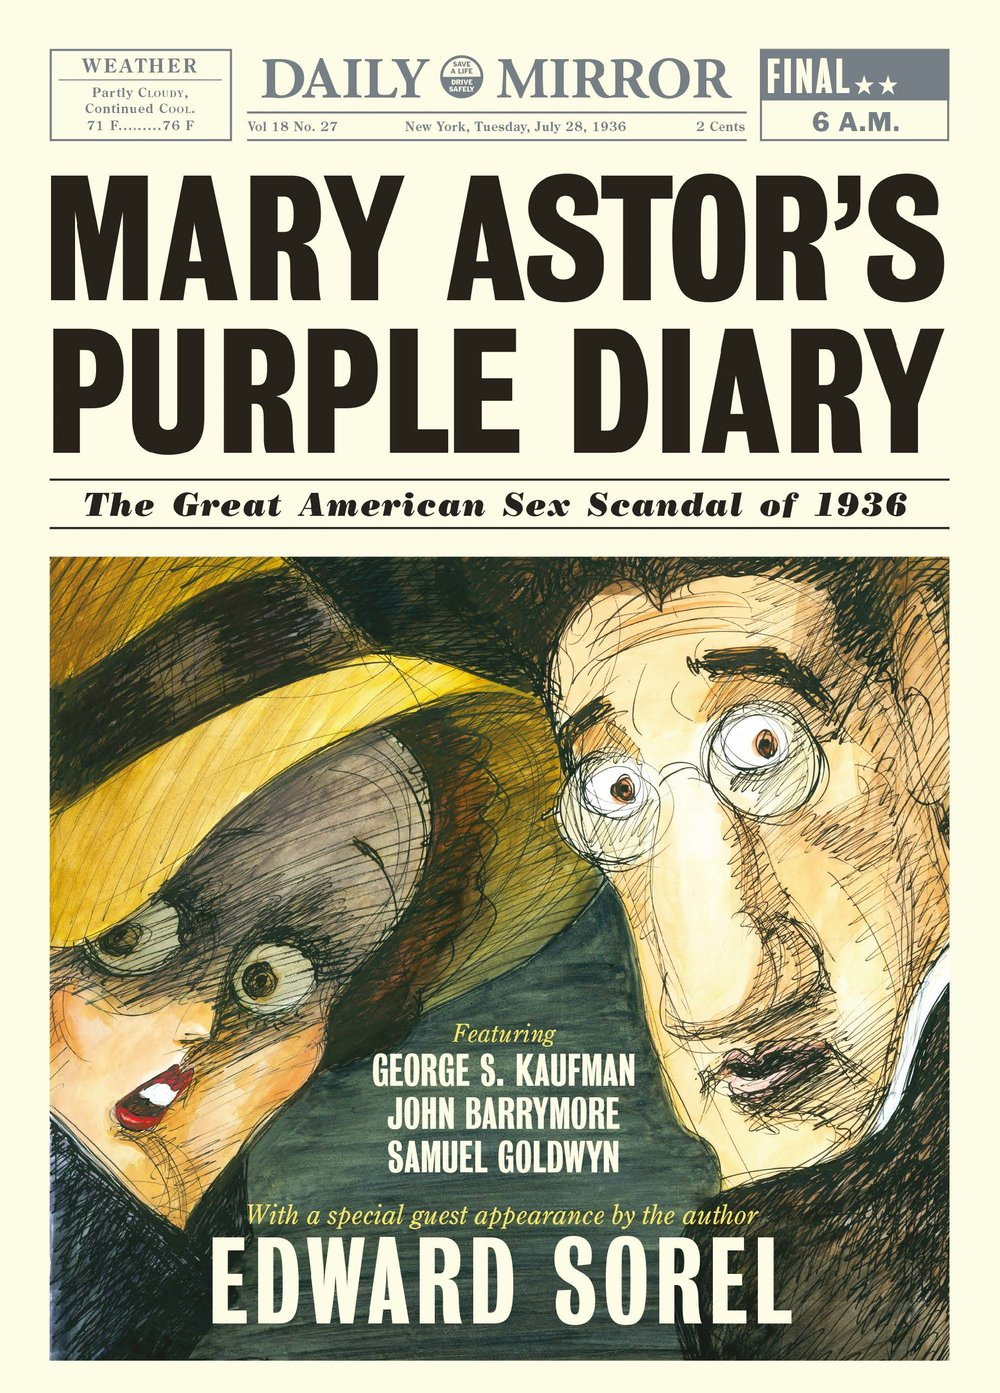 Mary Astors Purple Diary_978-1-63149-023-1.jpg